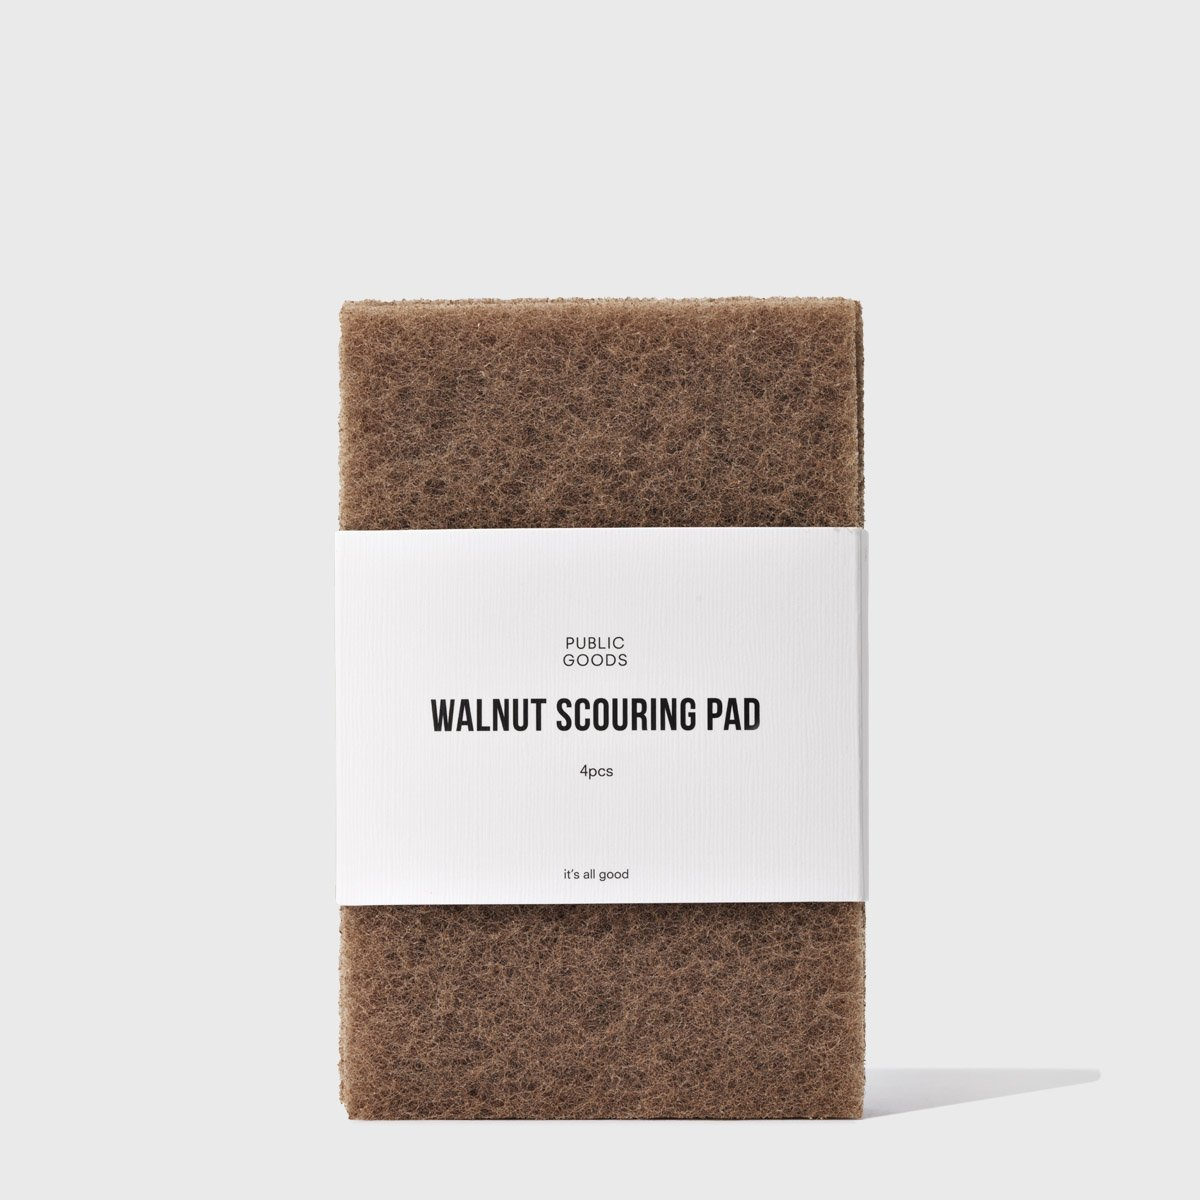 Walnut Scouring Pad (Case of 20)